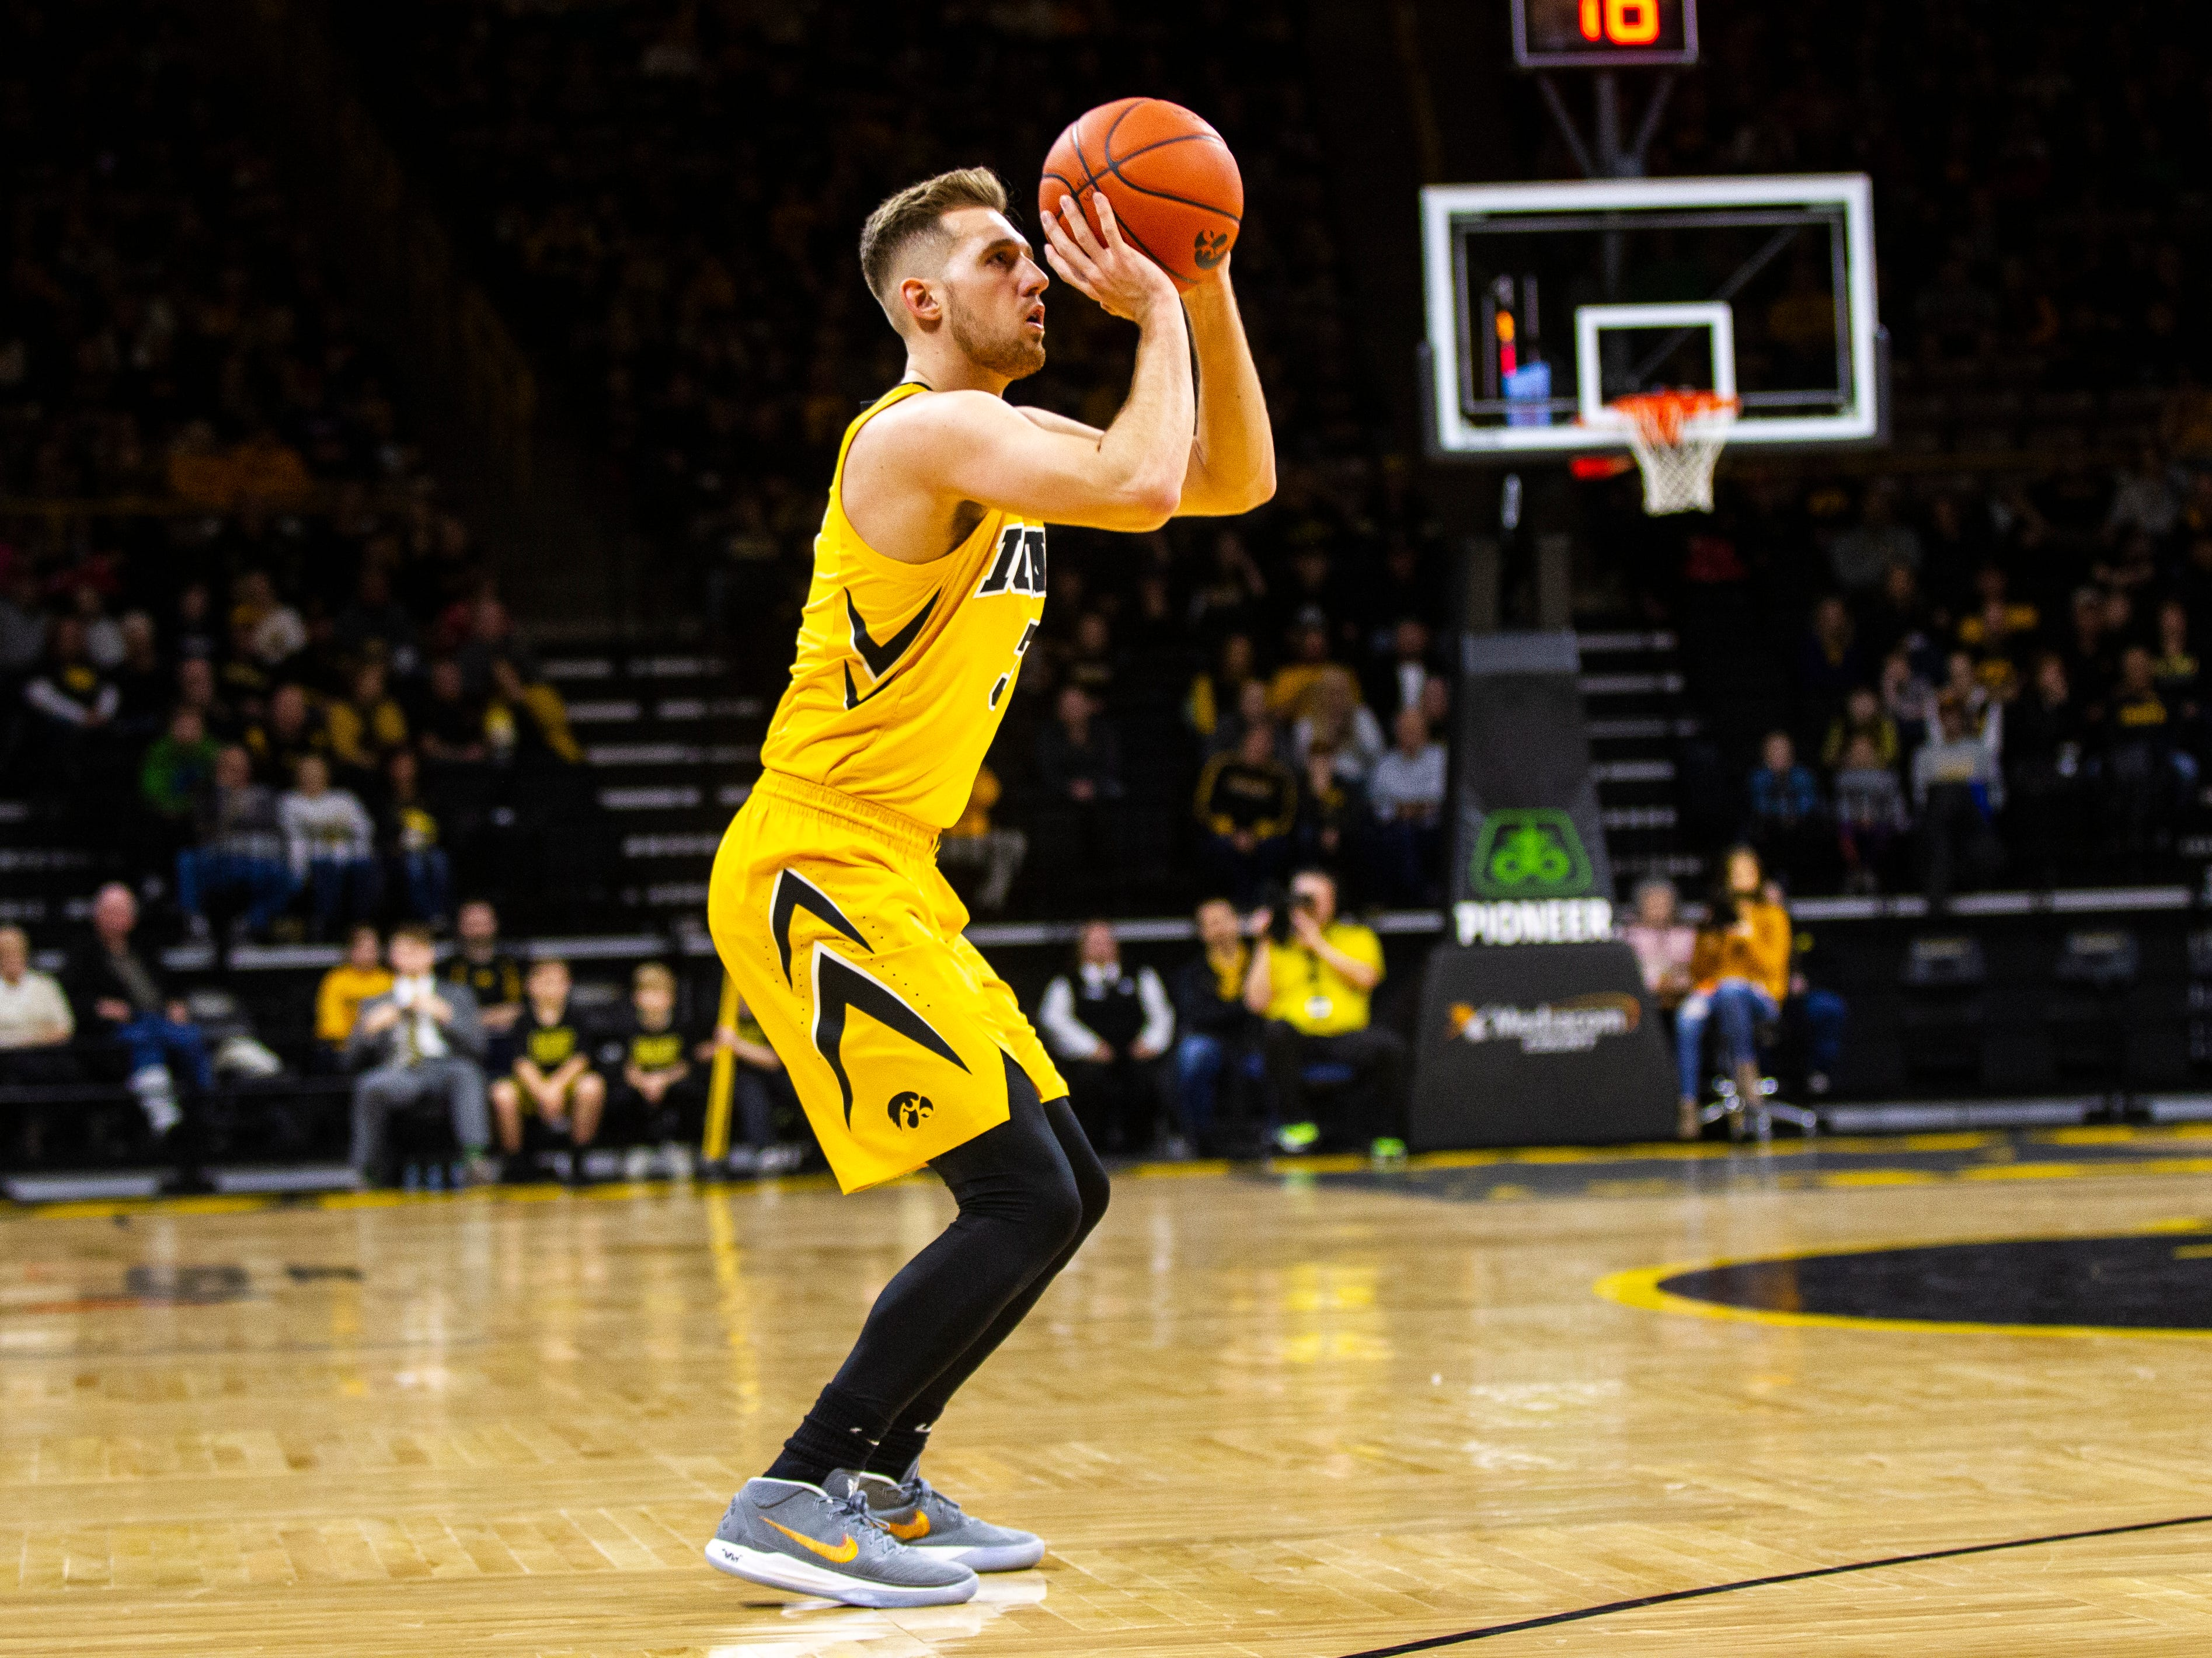 Iowa guard Jordan Bohannon (3) shoots a 3-point basket during a NCAA men's basketball game on Saturday, Dec. 22, 2018, at Carver-Hawkeye Arena in Iowa City.